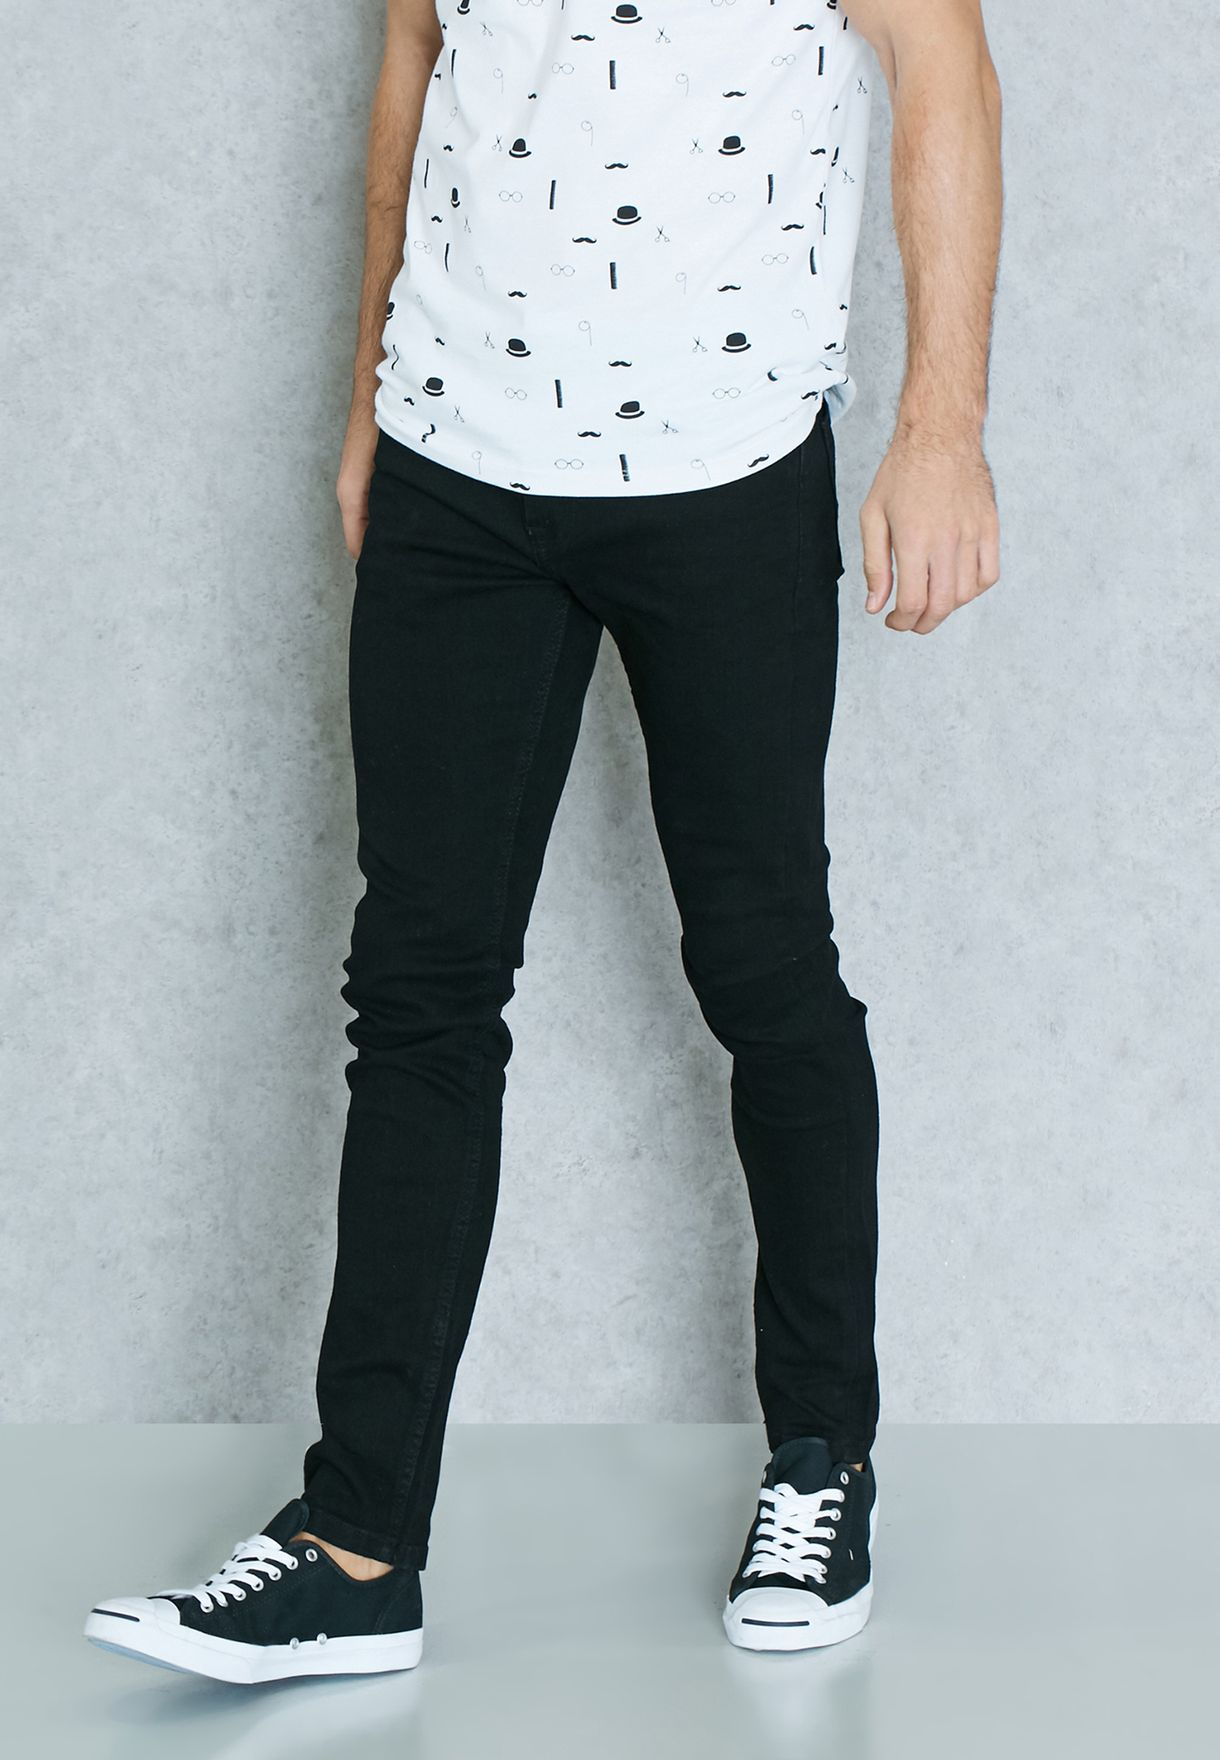 6f22190bc3 Shop Only sons black Warp Skinny Fit Dark Ripped Jeans for Men in ...